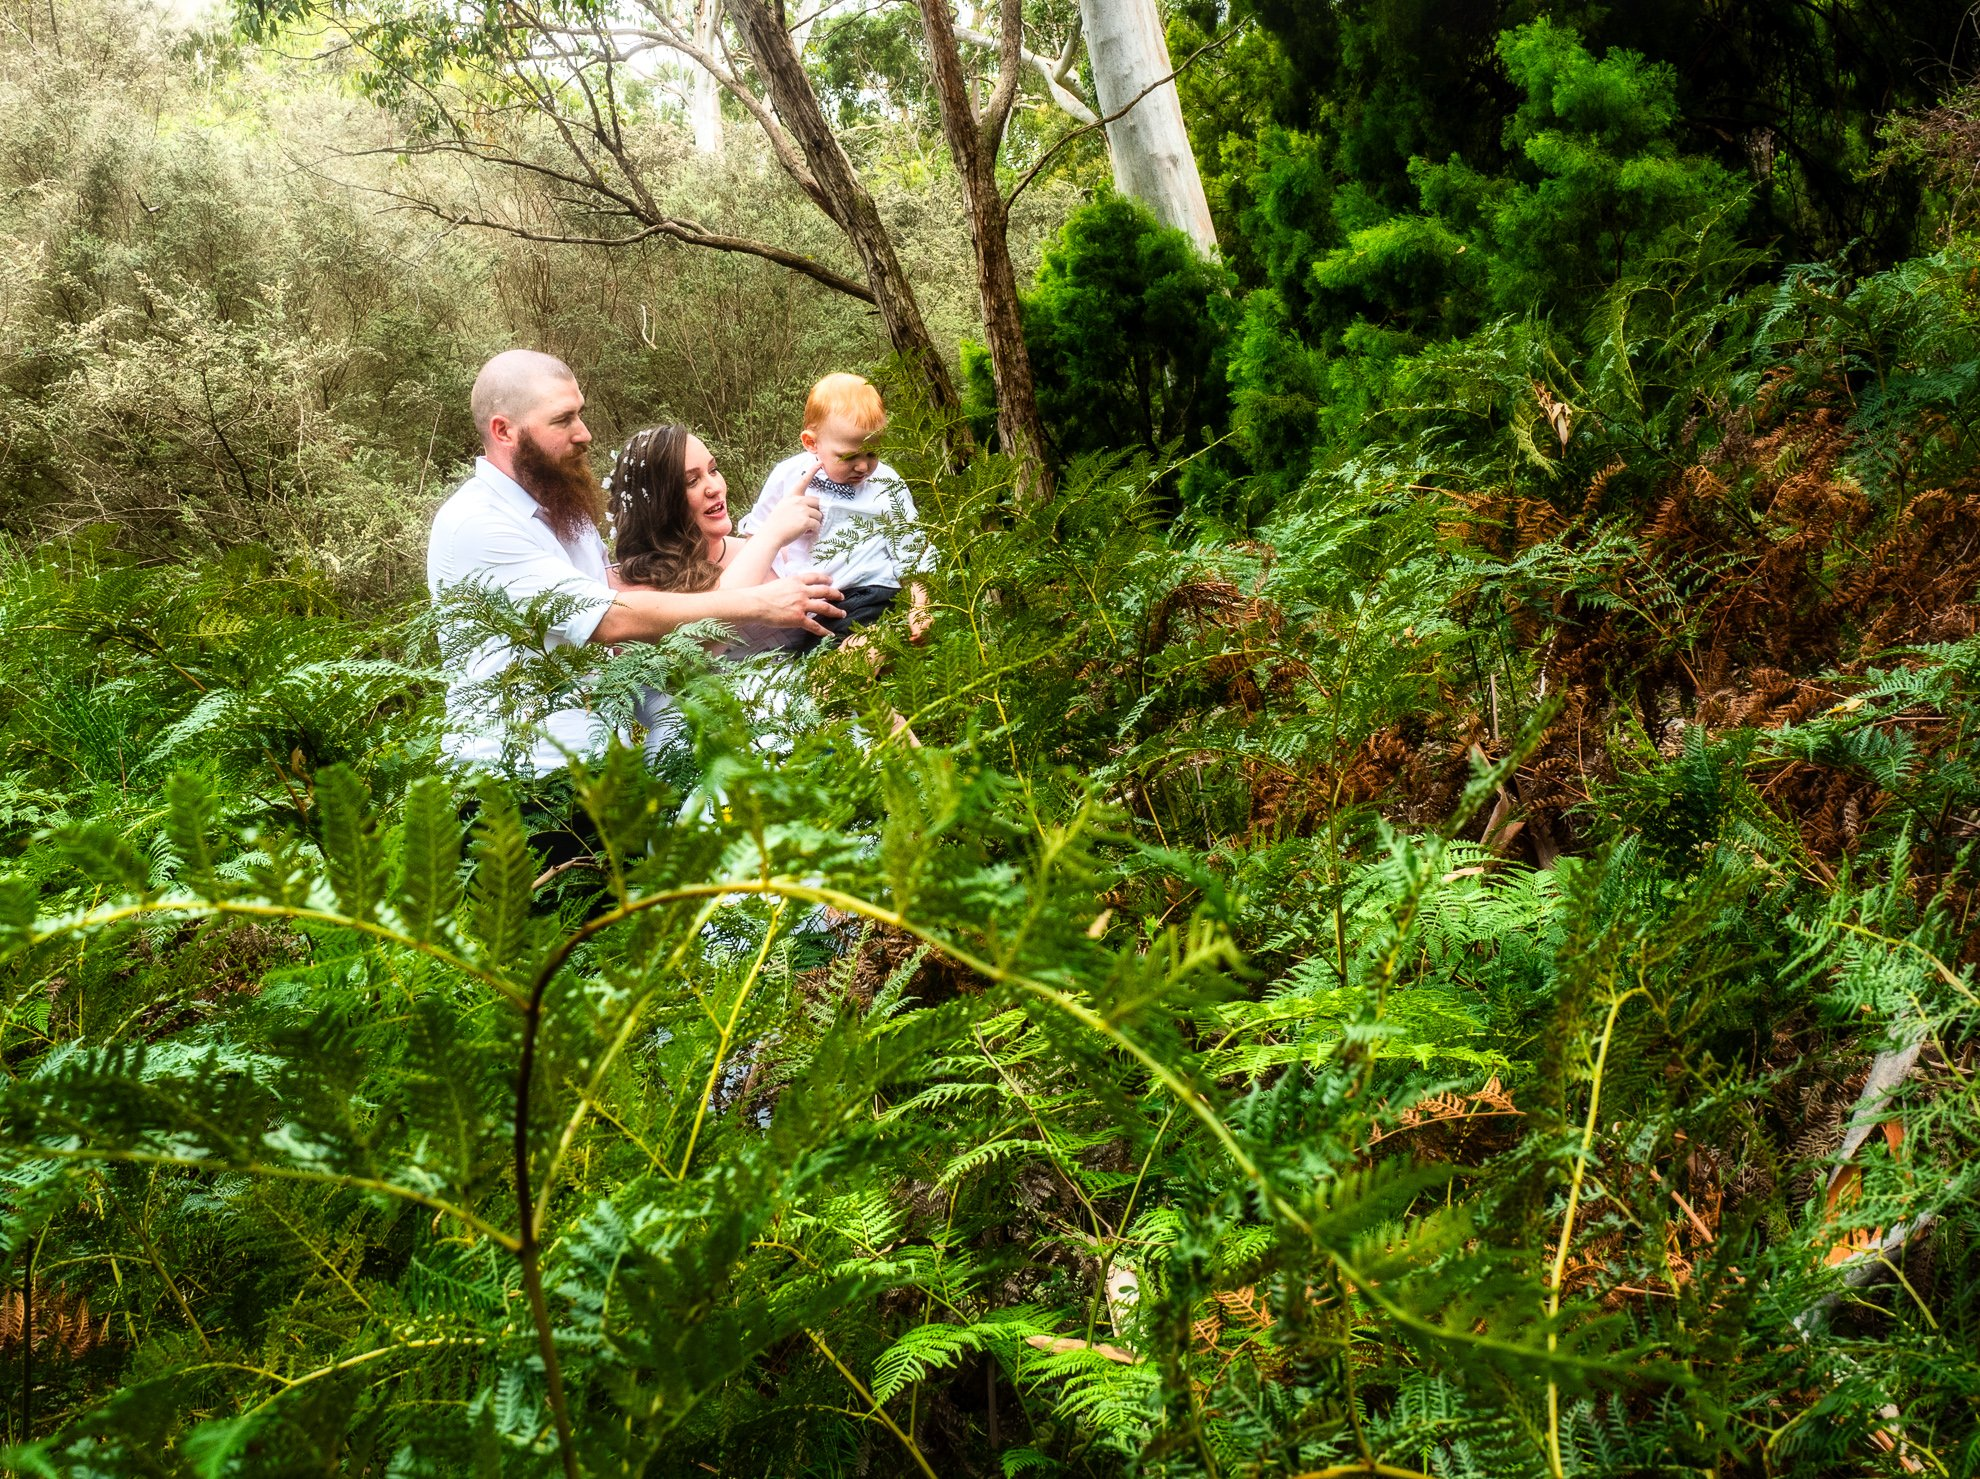 xWedding Couple in Forest with Child